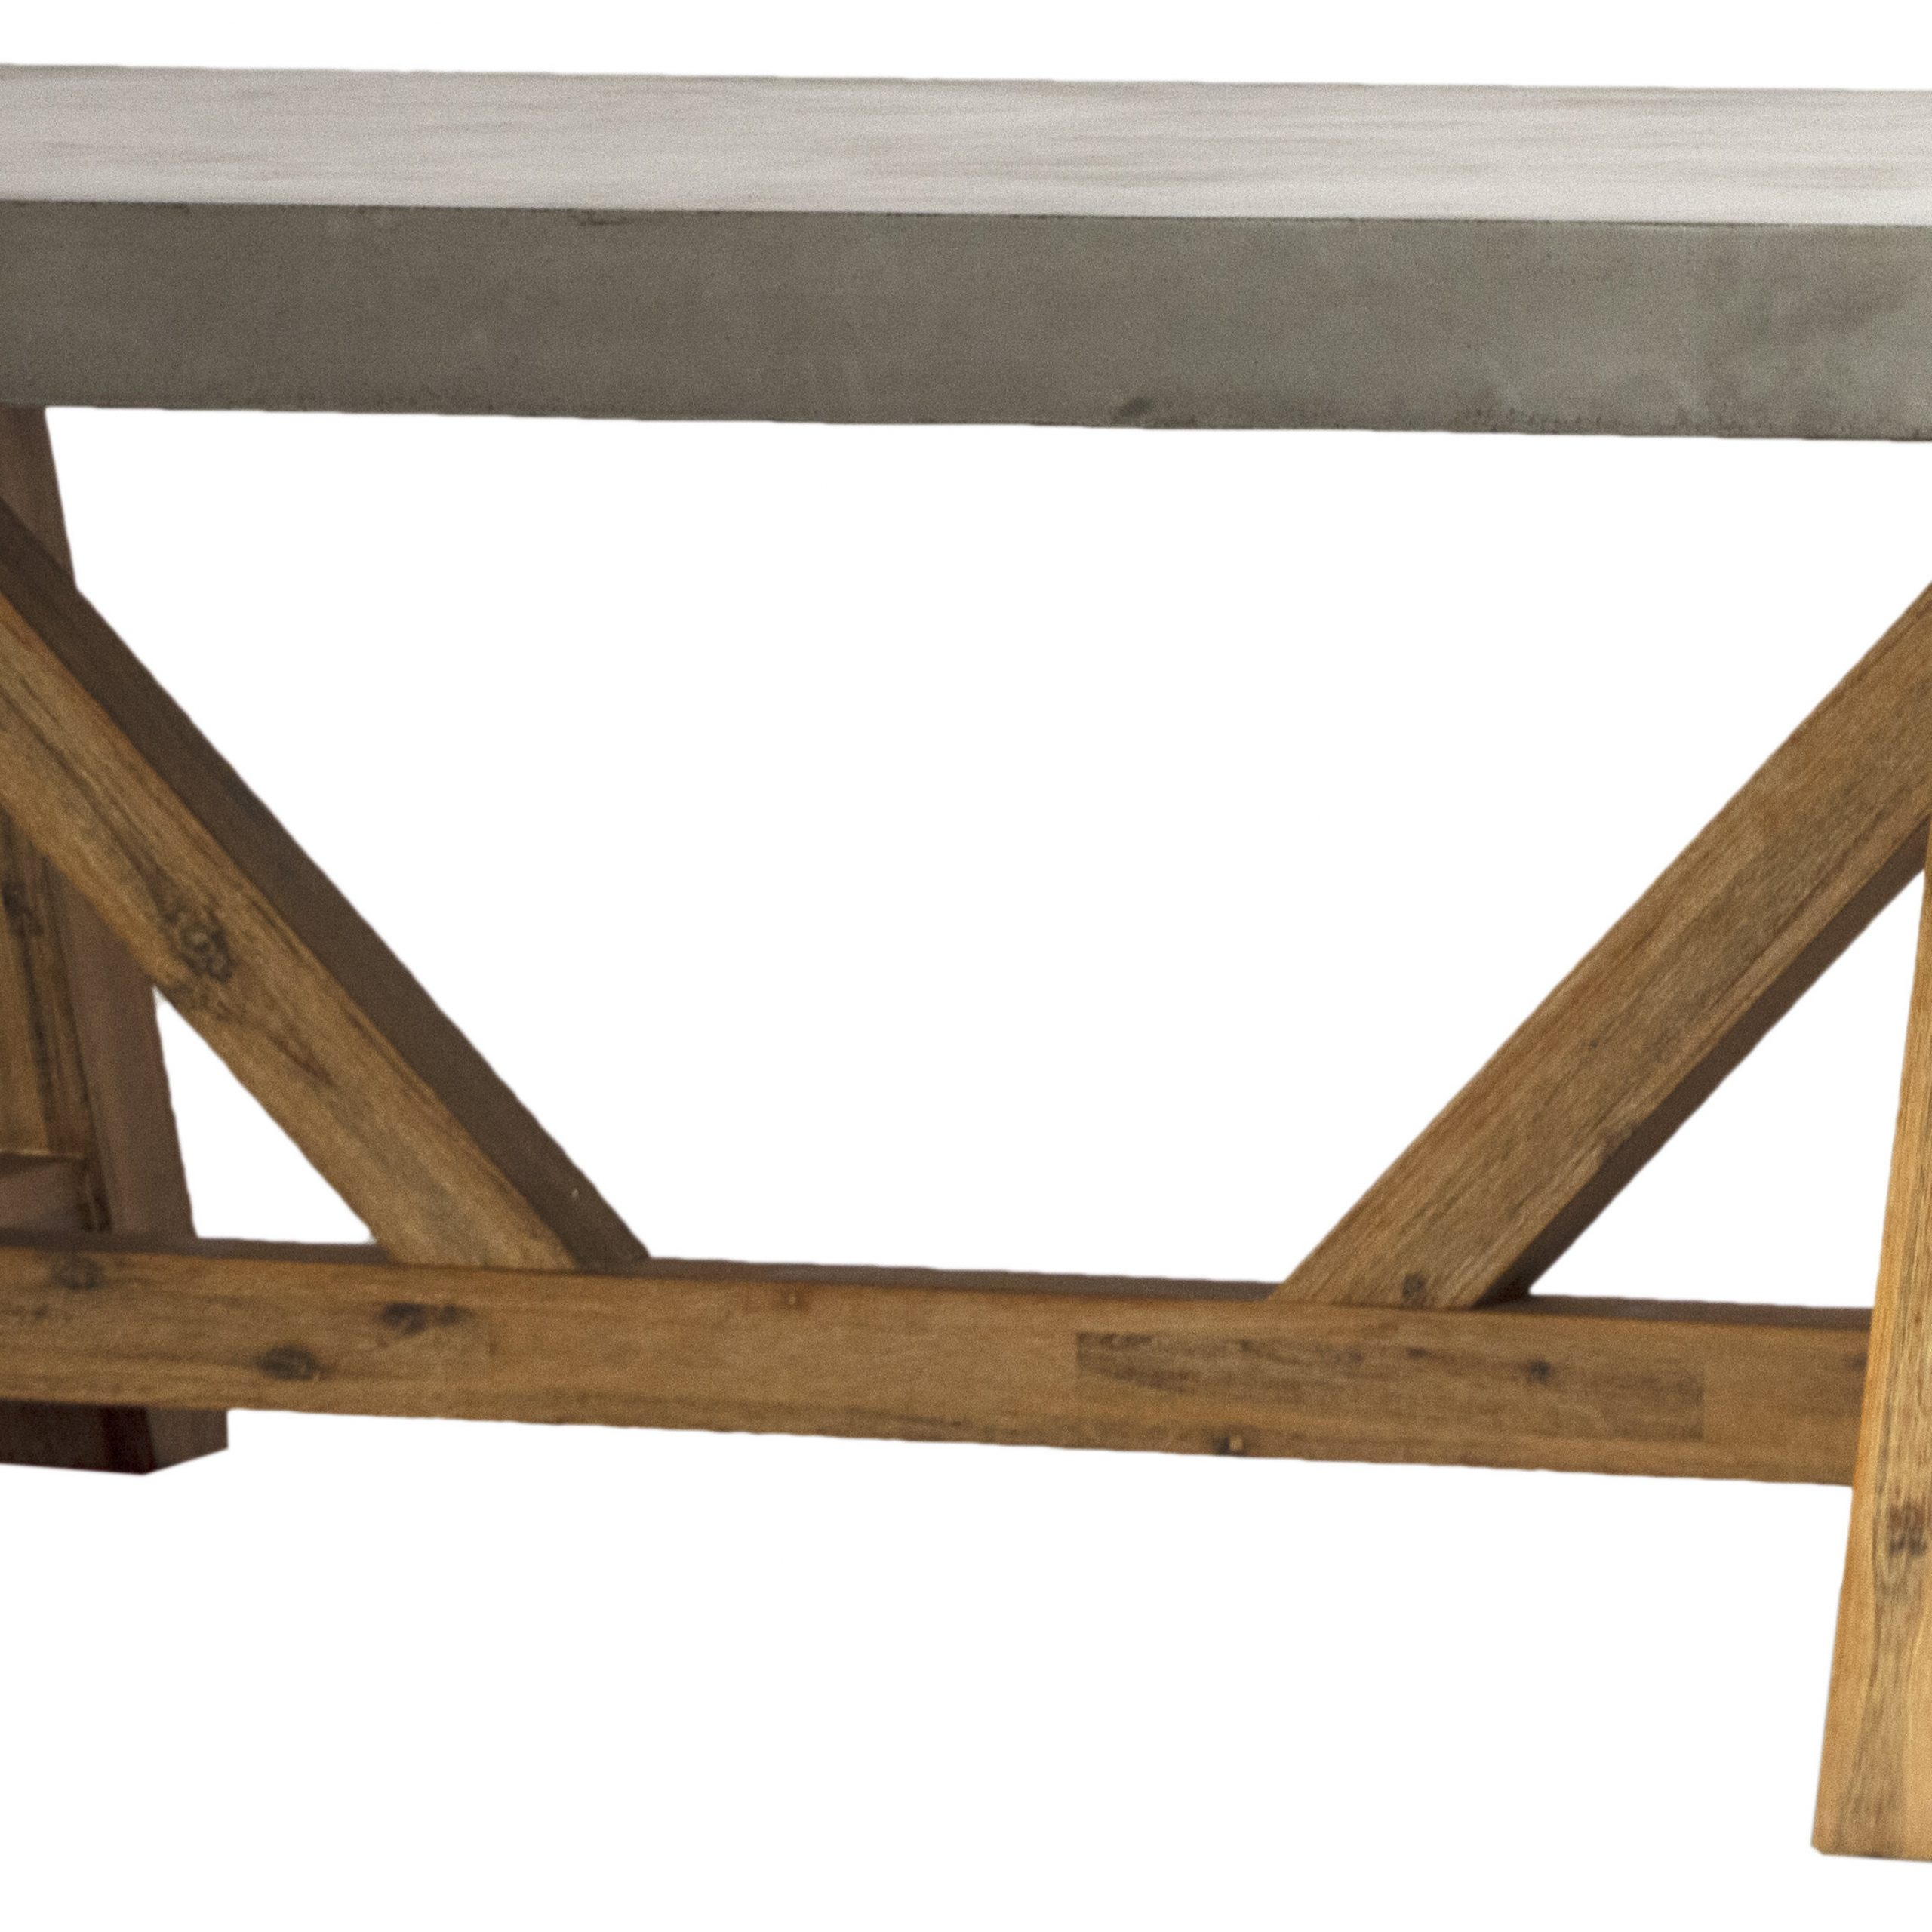 2020 Ahsburn Dining Table With Regard To Transitional 8 Seating Rectangular Helsinki Dining Tables (View 1 of 25)